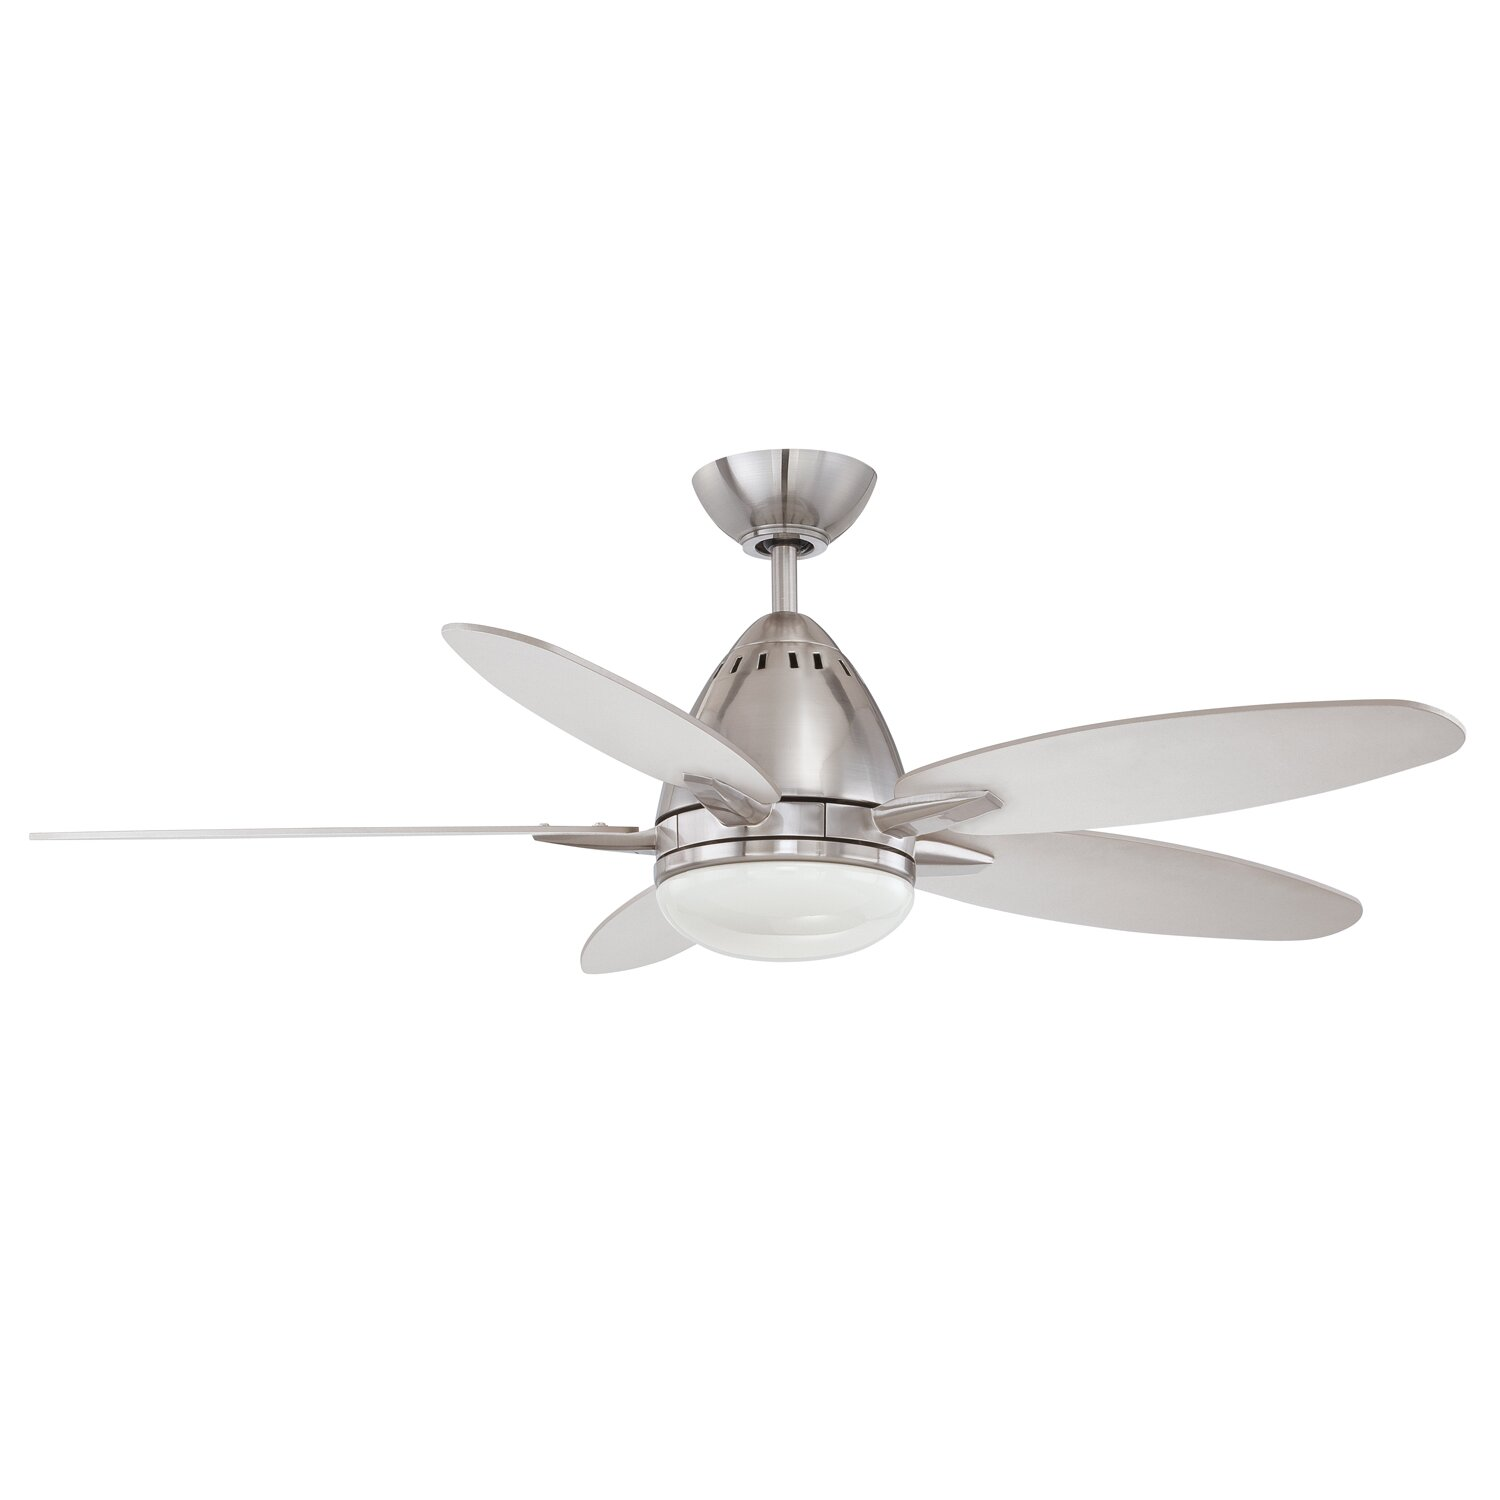 "Kendal Lighting 44"" Navaton 5 Blade Ceiling Fan With Wall"